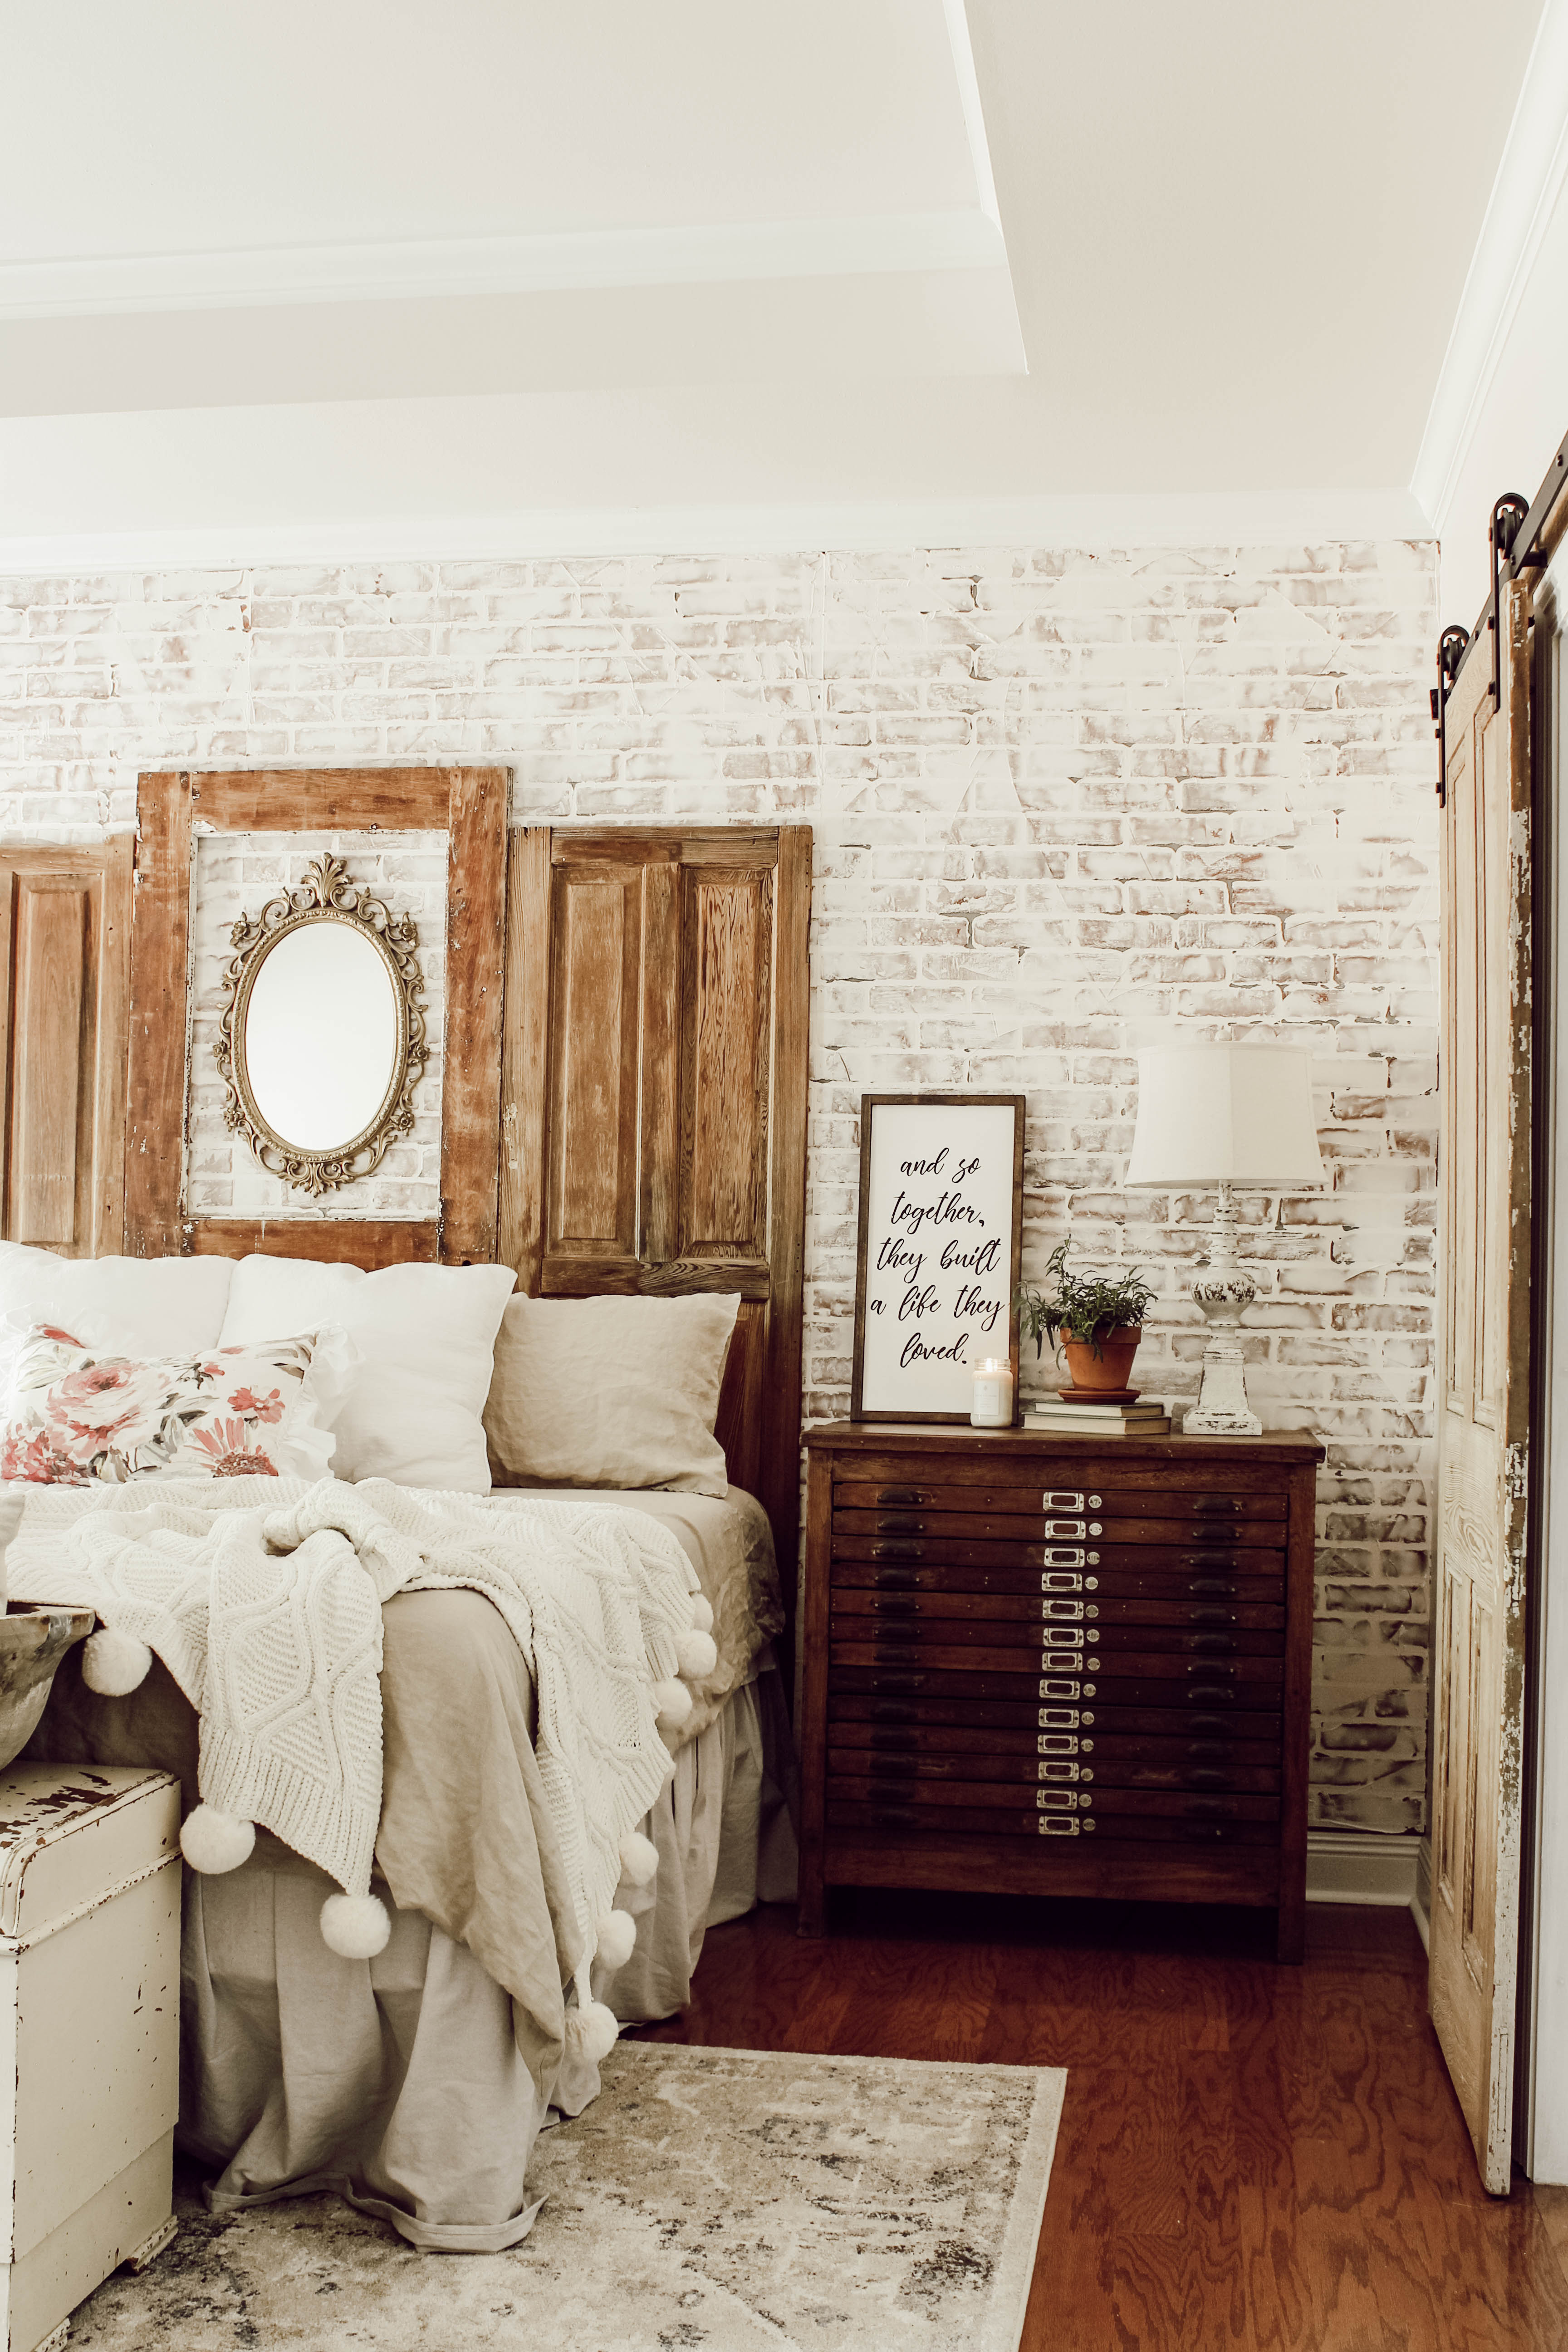 A vintage bedroom makeover with printer's cabinet.